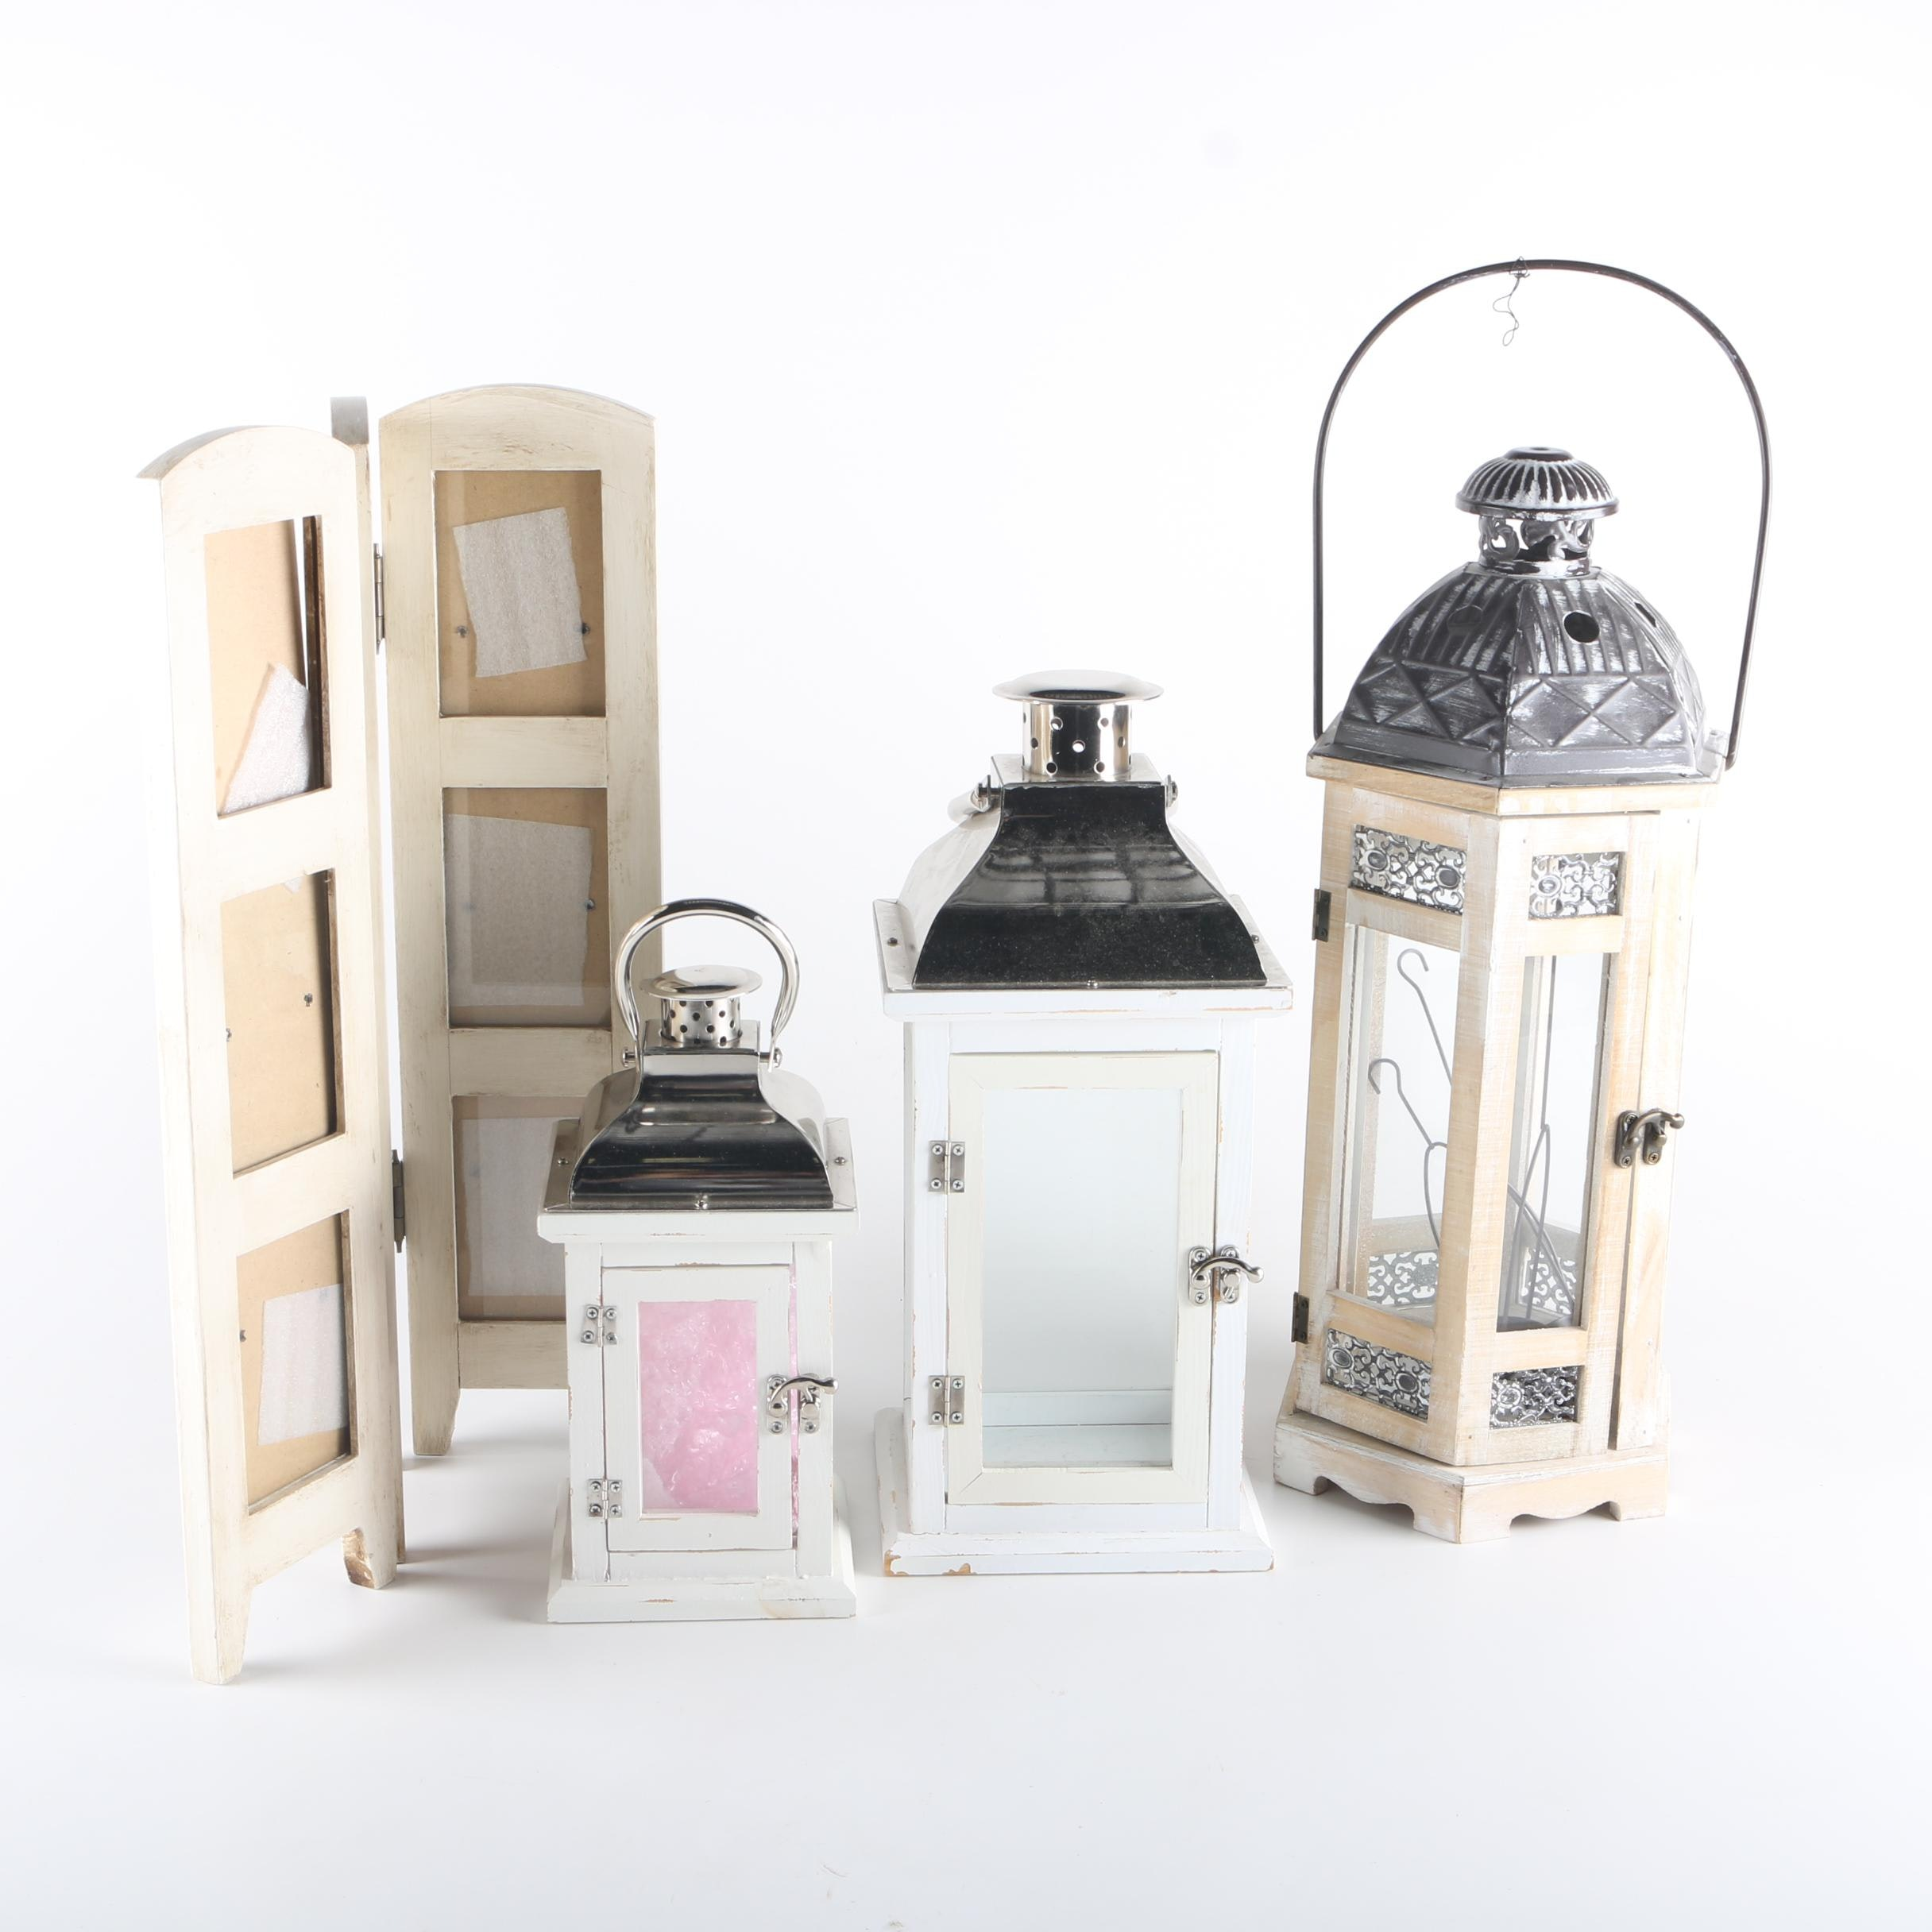 Collection of Lanterns and More